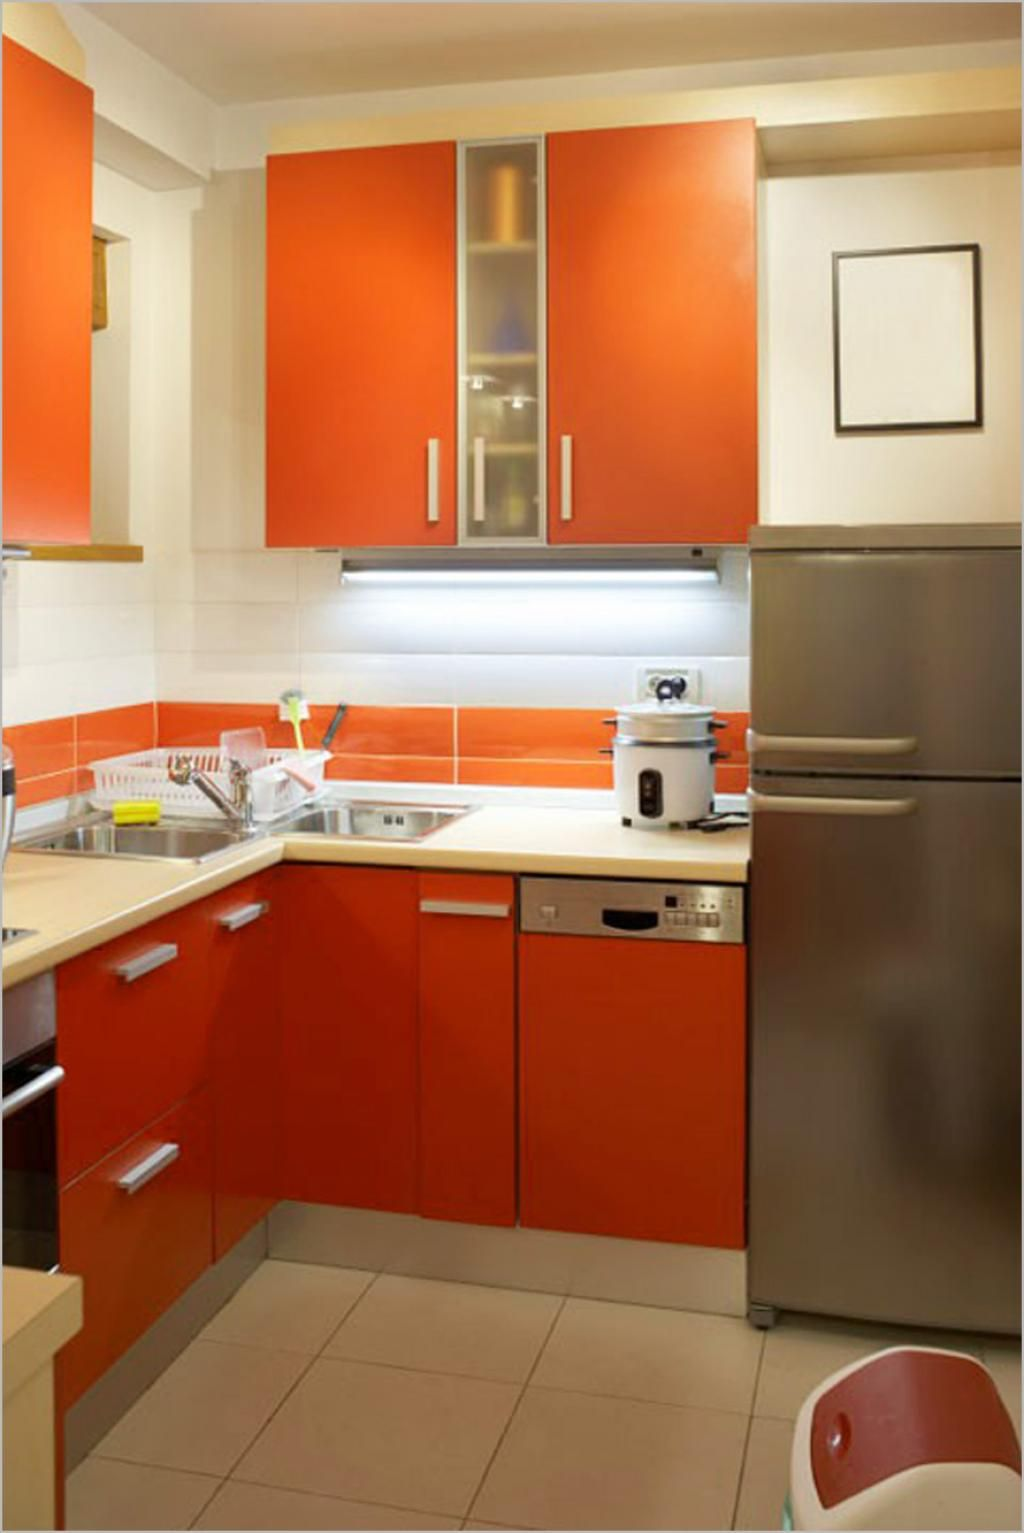 Cool Small Kitchen Design Ideas Kitchen Small Small Kitchens Interior Design In Small Kitchen